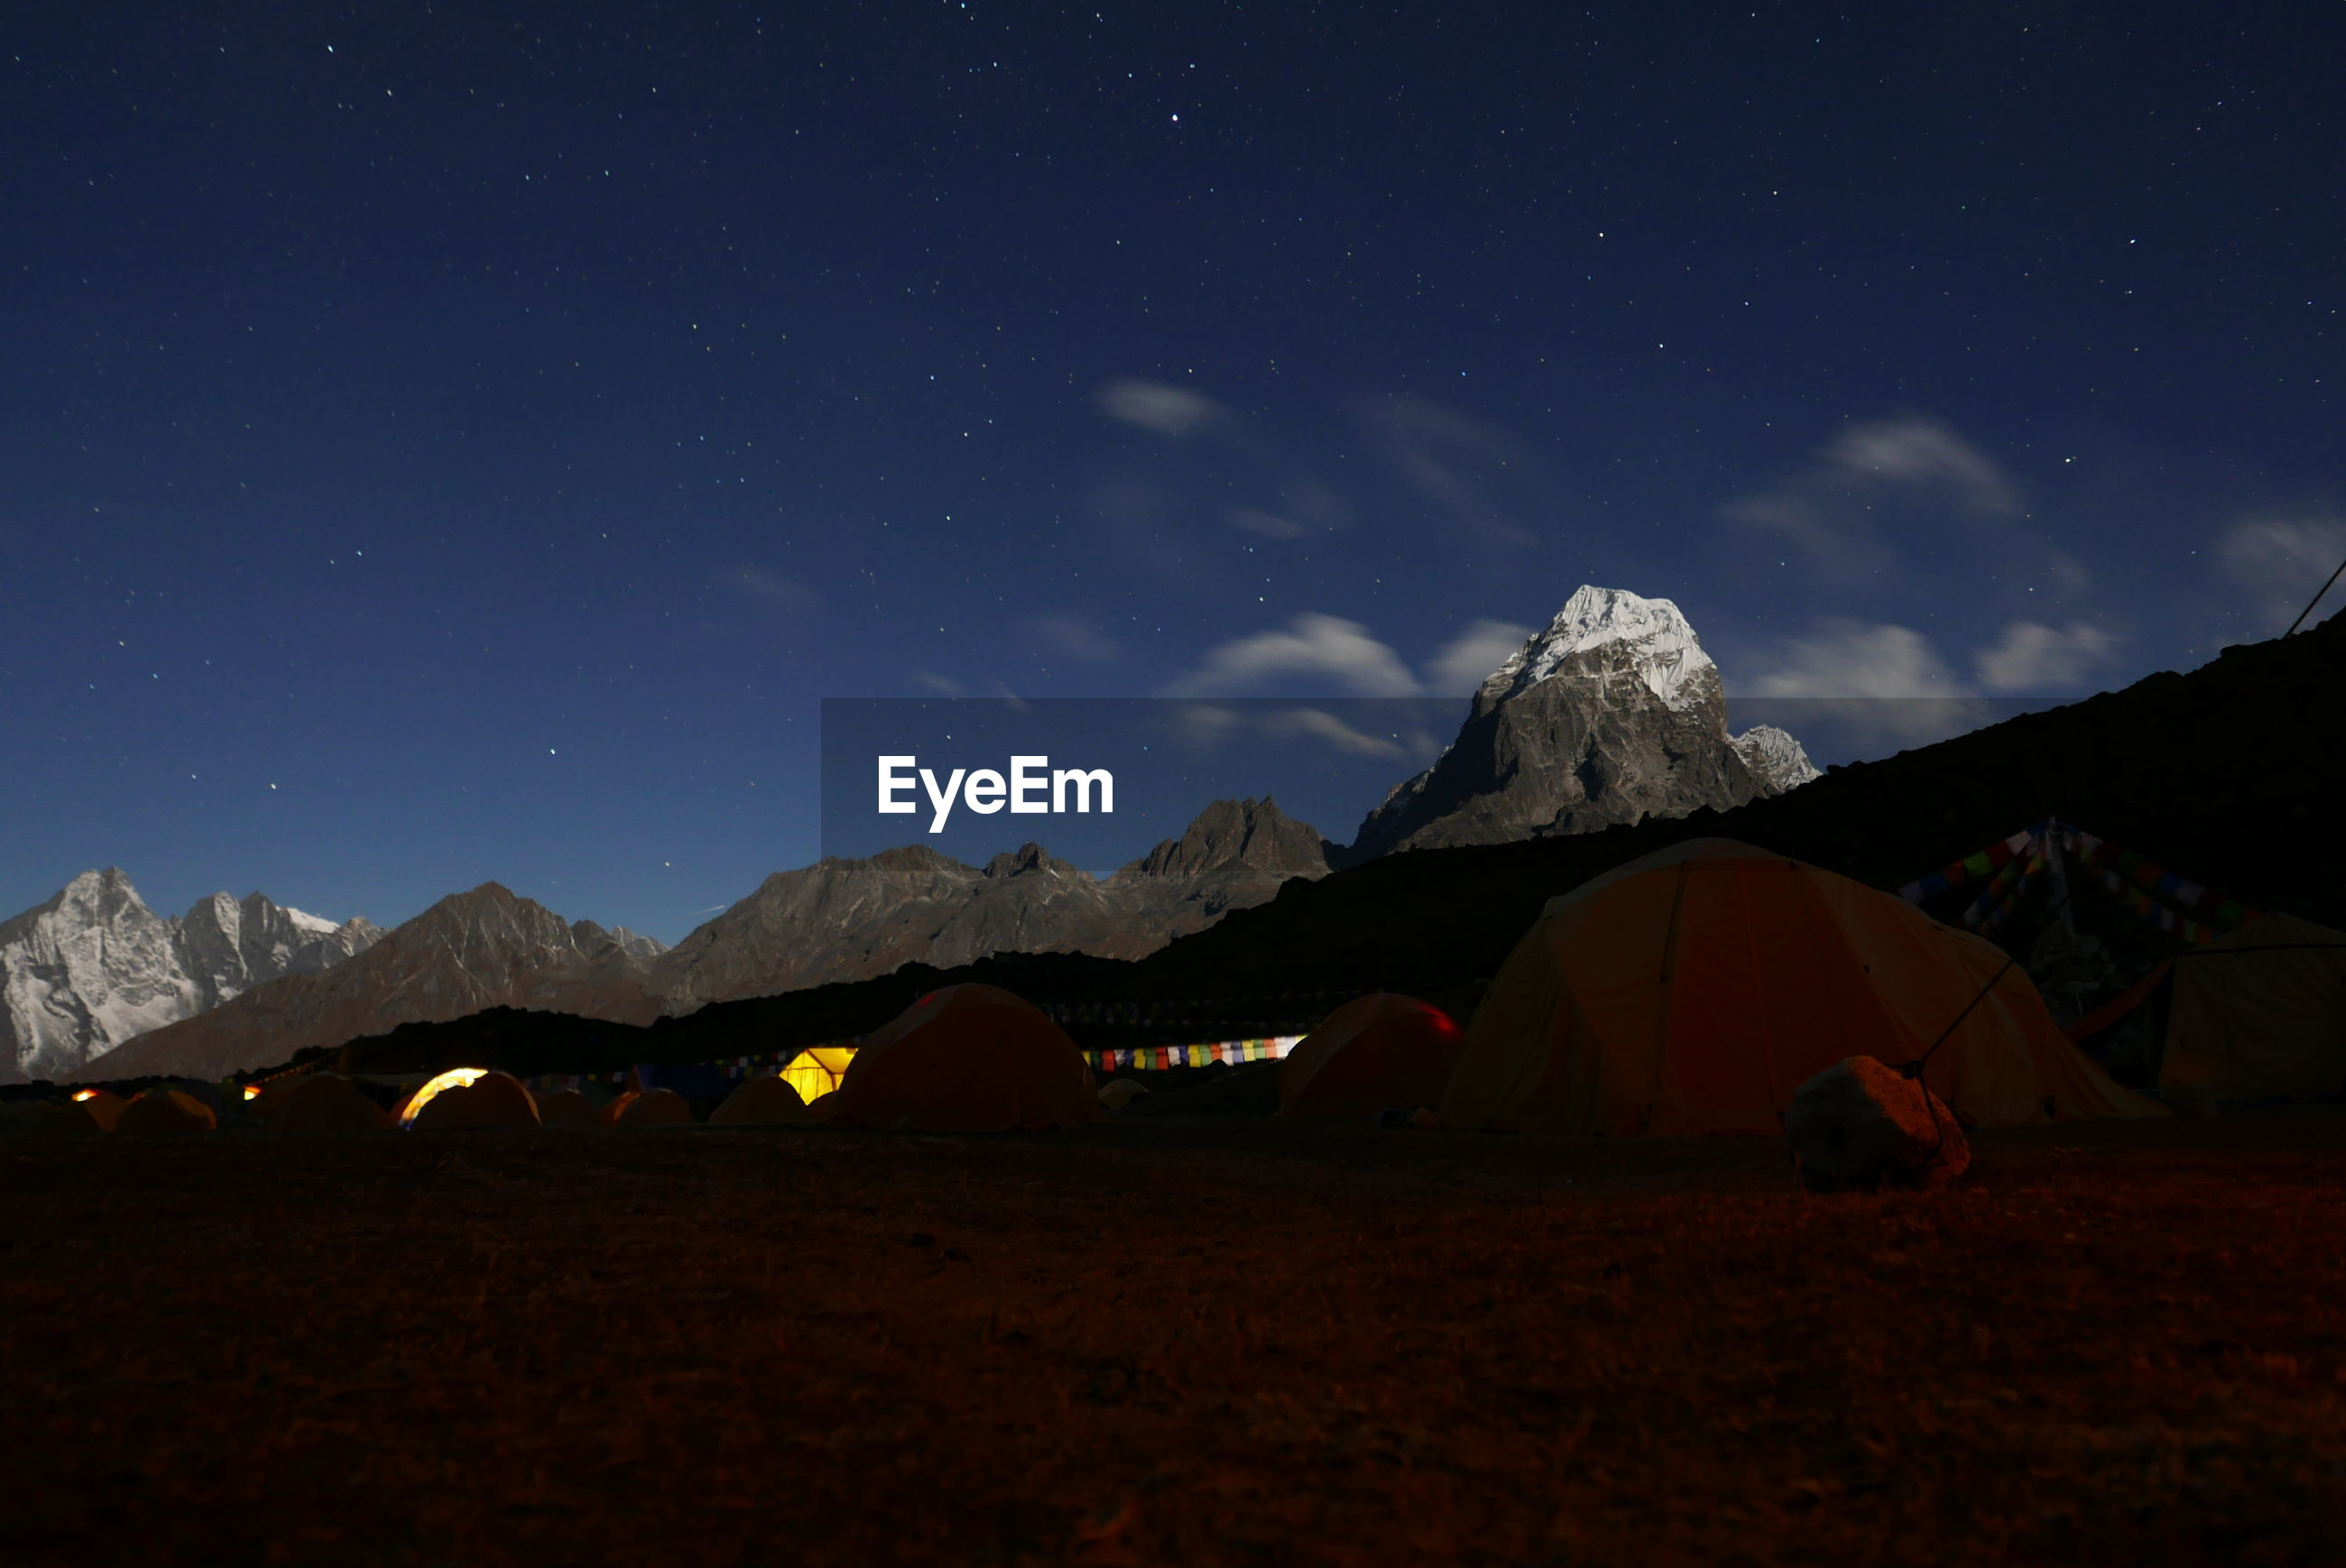 Tents by rocky mountains against sky at night